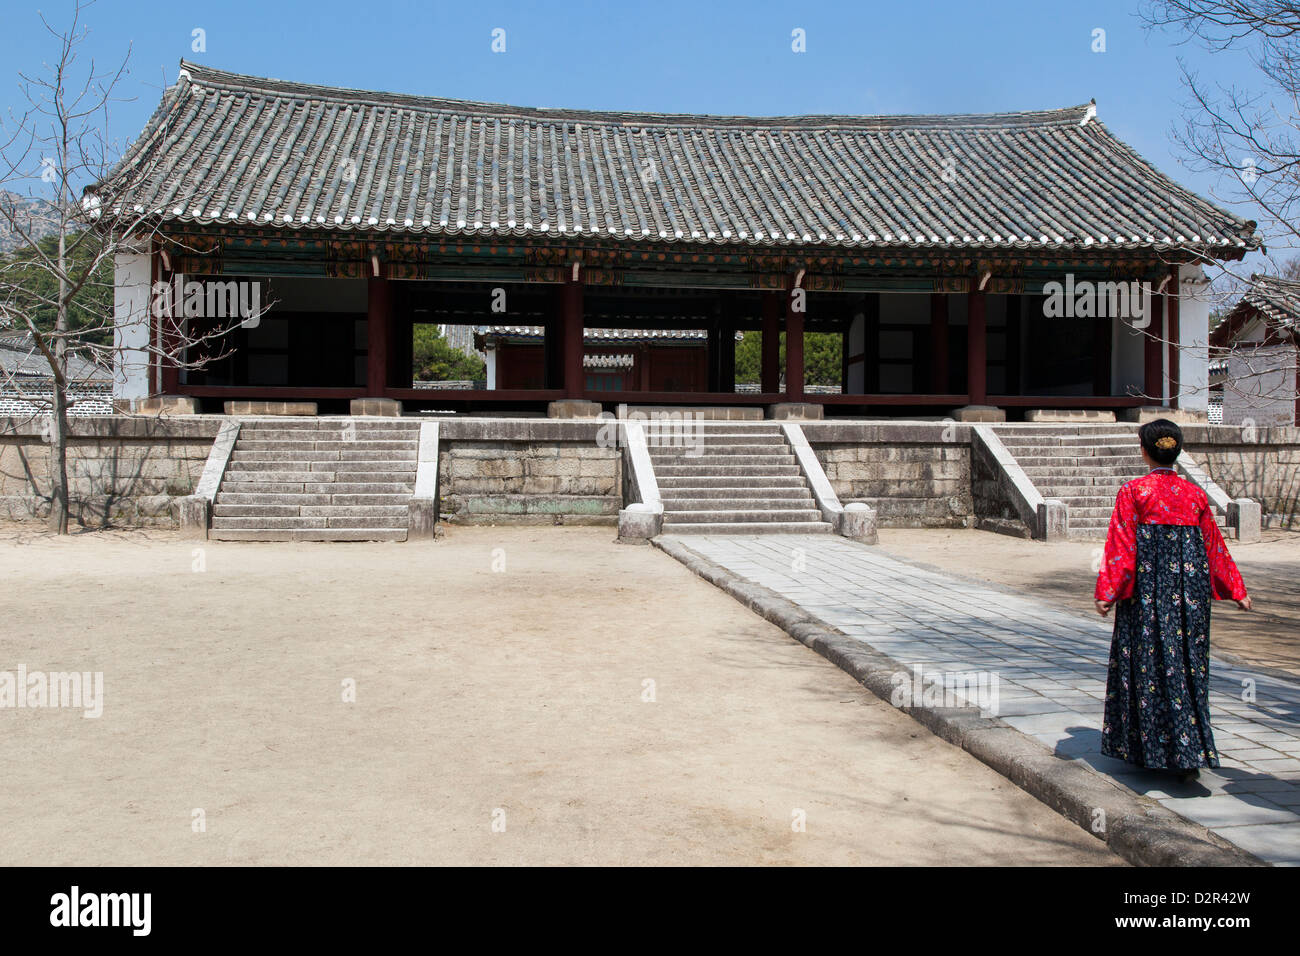 Woman in traditional dress at King Wang Kon's Mausoleum, Kaesong City, North Korea - Stock Image